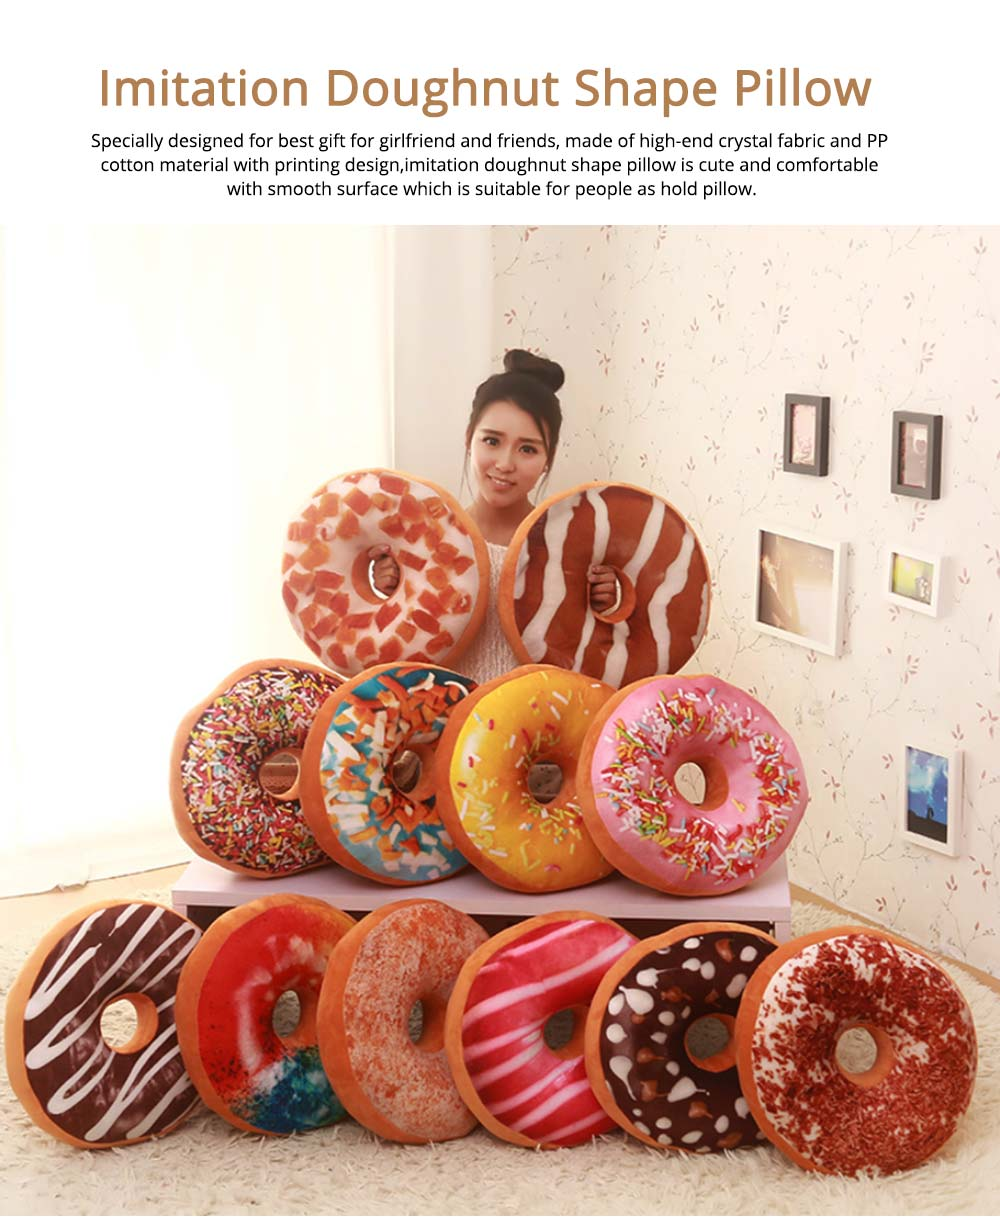 Imitation Doughnut Shape Pillow, Realistic Soft Cotton Pillow with Special 3D Effect, Printing Design Cotton Pillow 0